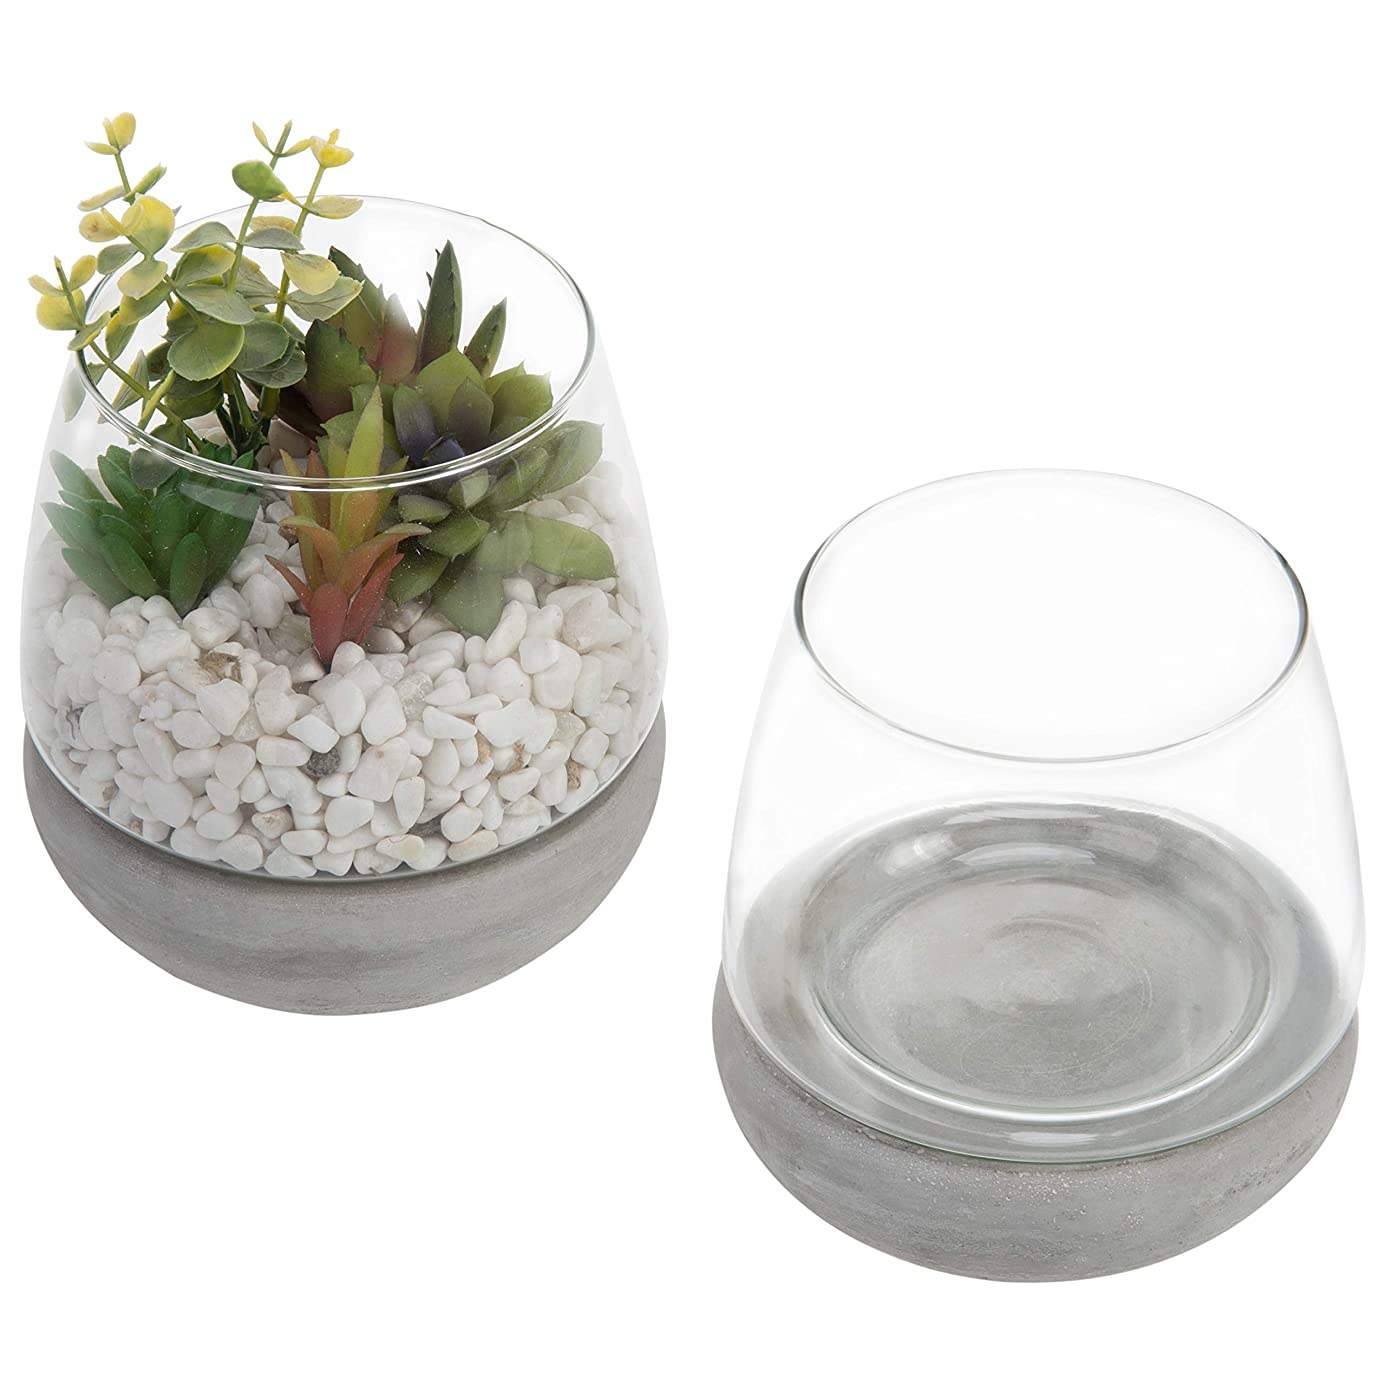 MyGift Modern Clear Glass 4-Inch Rounded Vases with Concrete Gray Base, Set of 2 ygv9123446